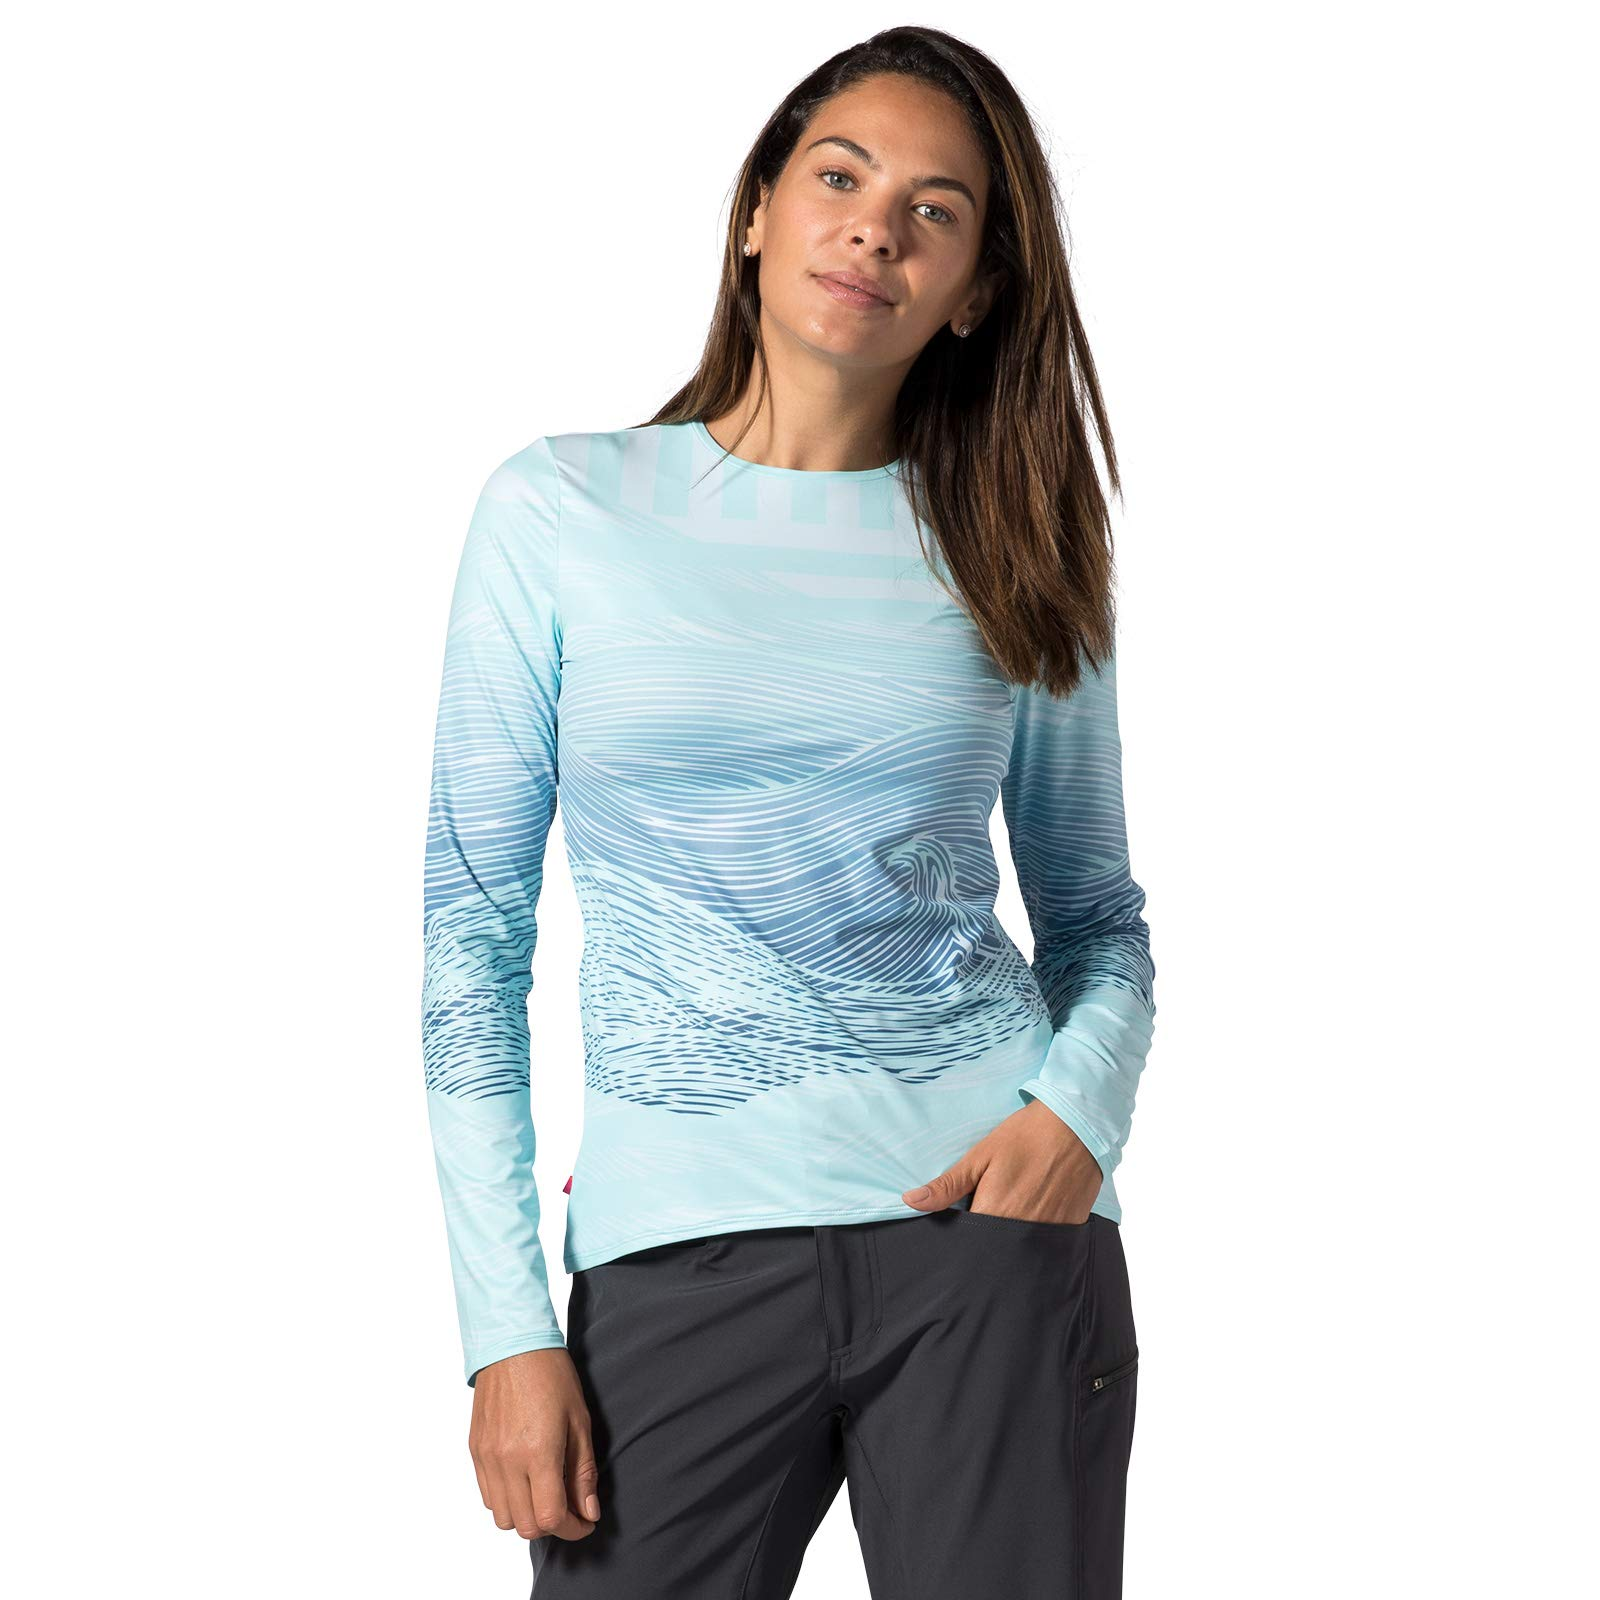 Terry Women's Soleil Flow Long Sleeve Athletic Top Loose Fit UPF 50+ Protection Lightweight - Seas The Day - Large by Terry